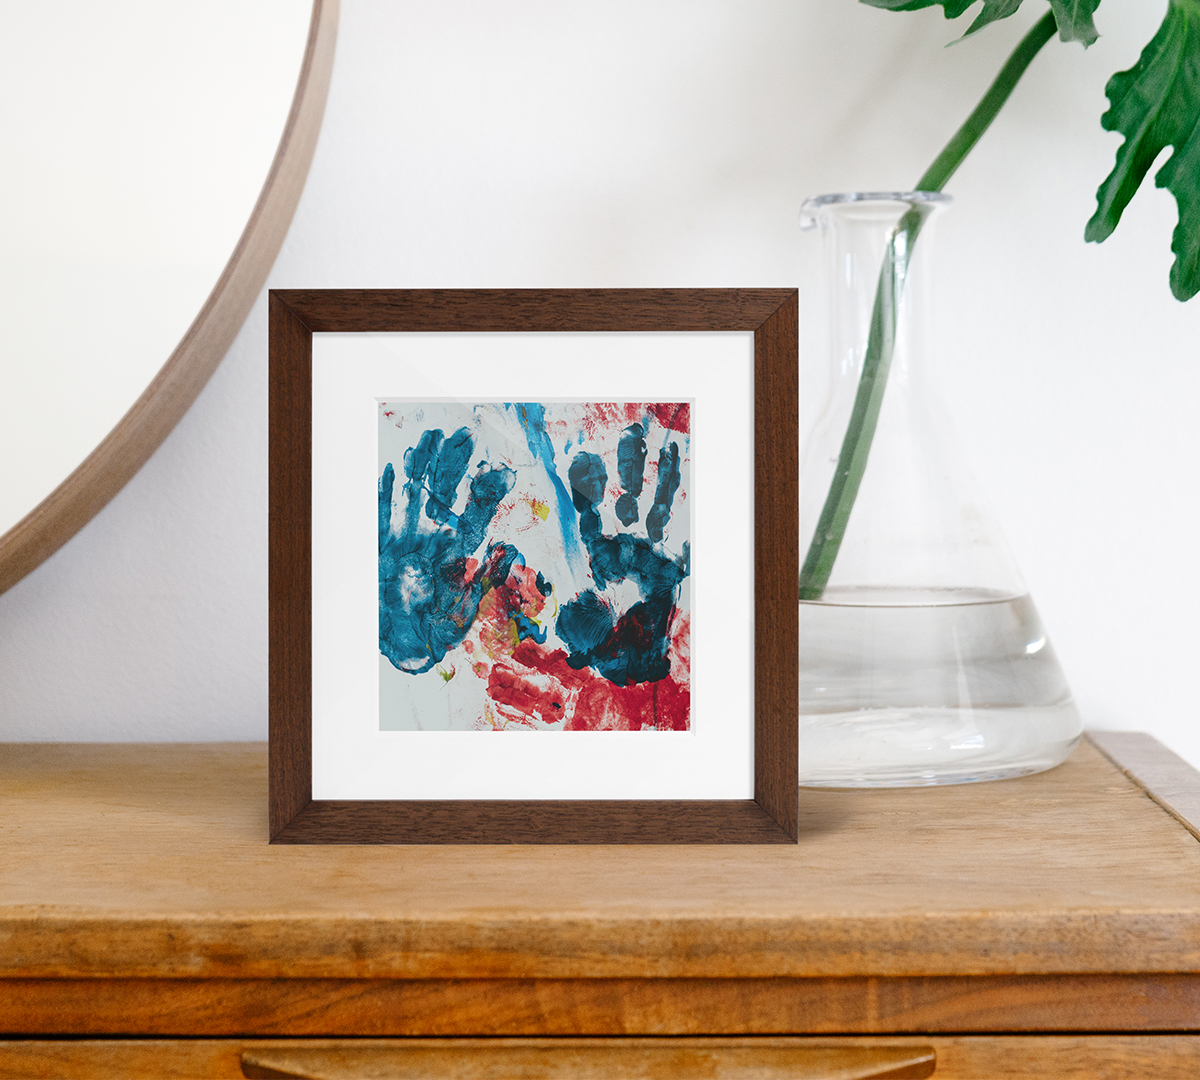 Artifact Uprising Wooden Tabletop frame in walnut finish featuring children's handprints in paint on dresser next to mirror and plant